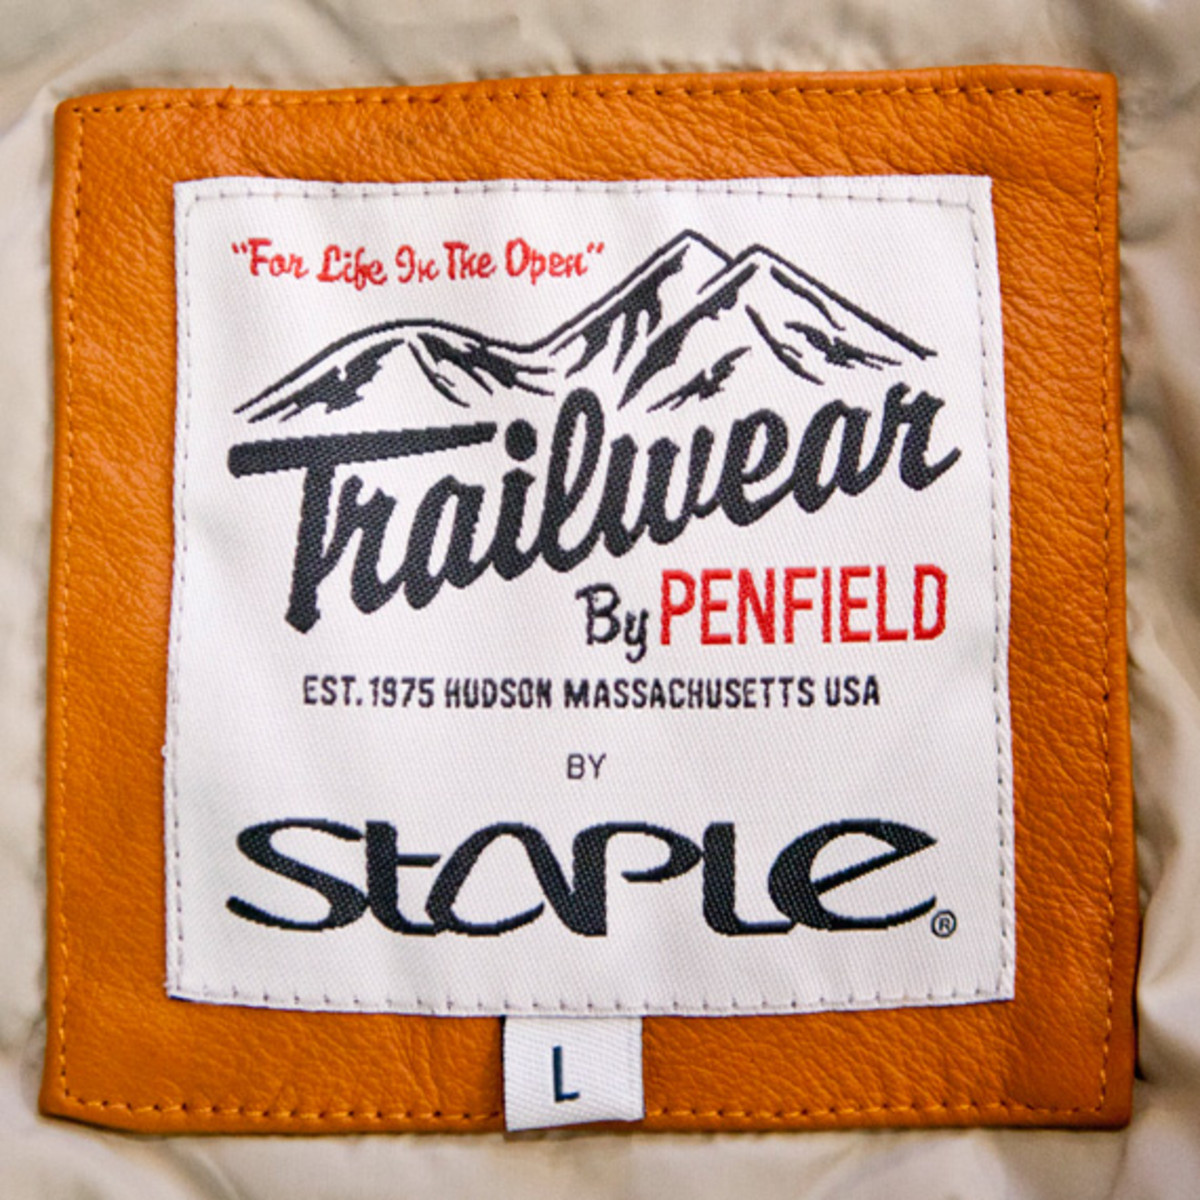 staple-penfield-rockwool-jacket-06